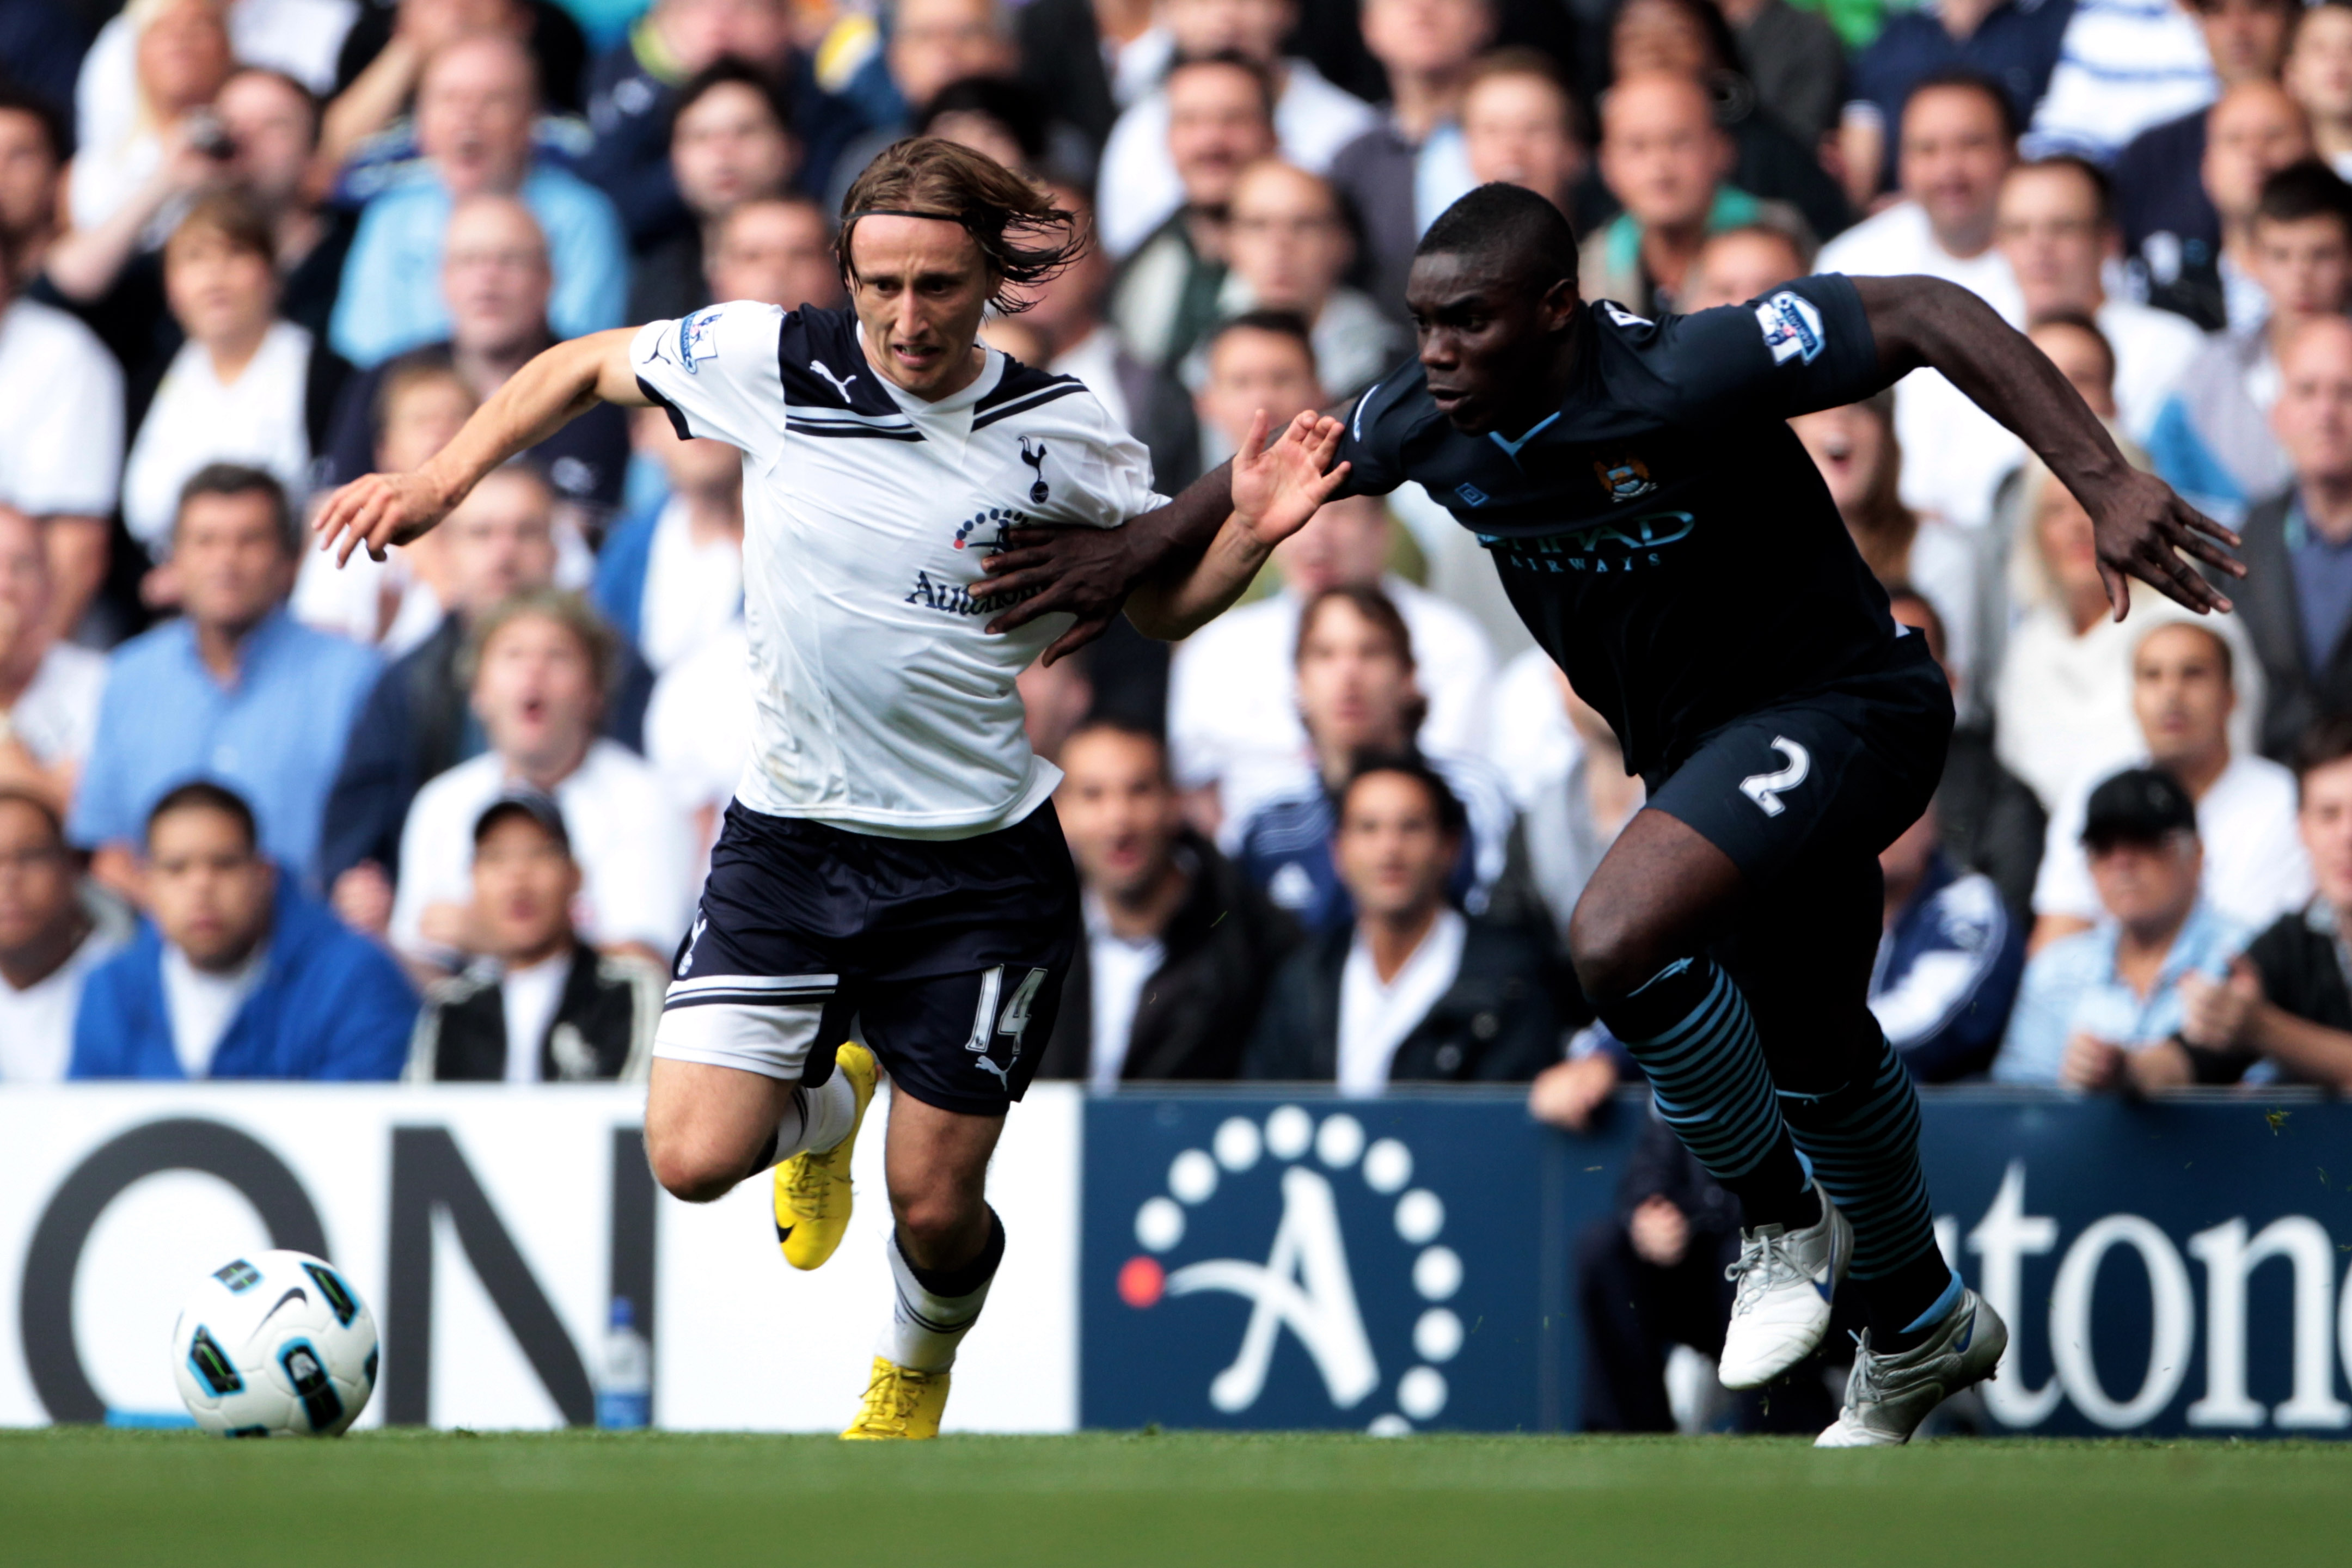 LONDON, ENGLAND - AUGUST 14:  Luka Modric of Tottenham battles with Micah Richards of Manchester City during the Barclays Premier League match between Tottenham Hotspur and Manchester City at White Hart Lane on August 14, 2010 in London, England.  (Photo